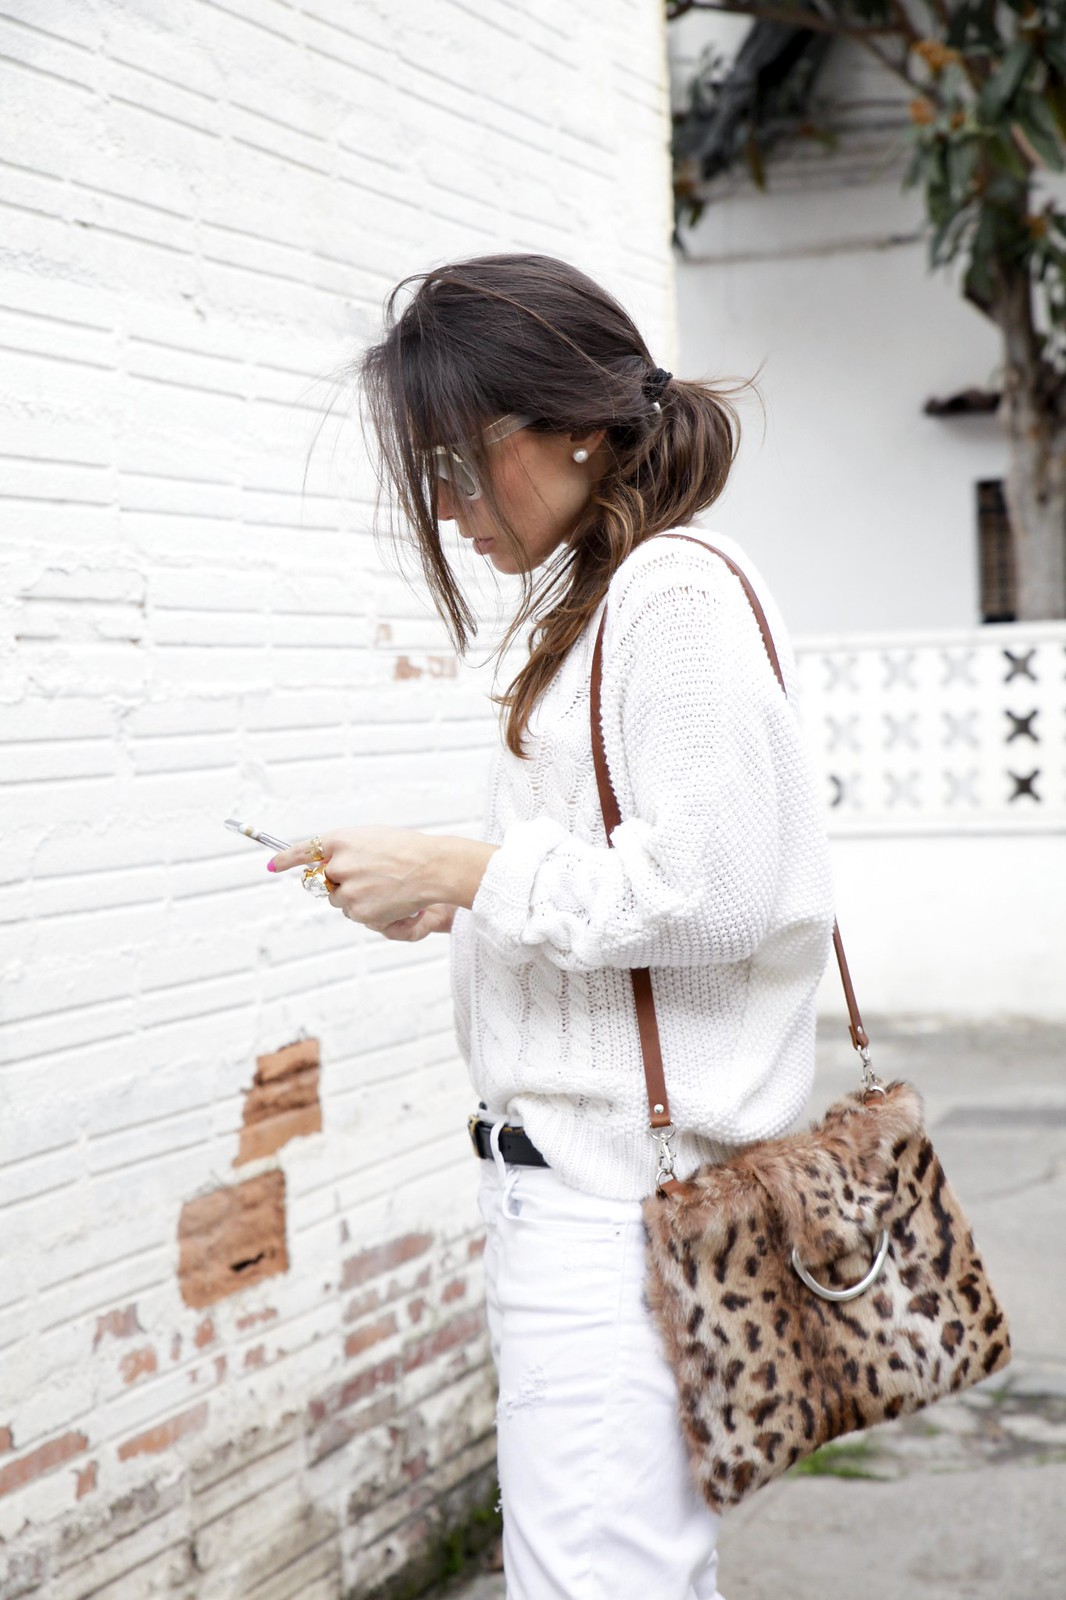 010_TOTAL_WHITE_OUTFIT_AND_LEO_LAURA_SANTOLARIA_THEGUESTGIRL_INFLUENCER_BARCELONA